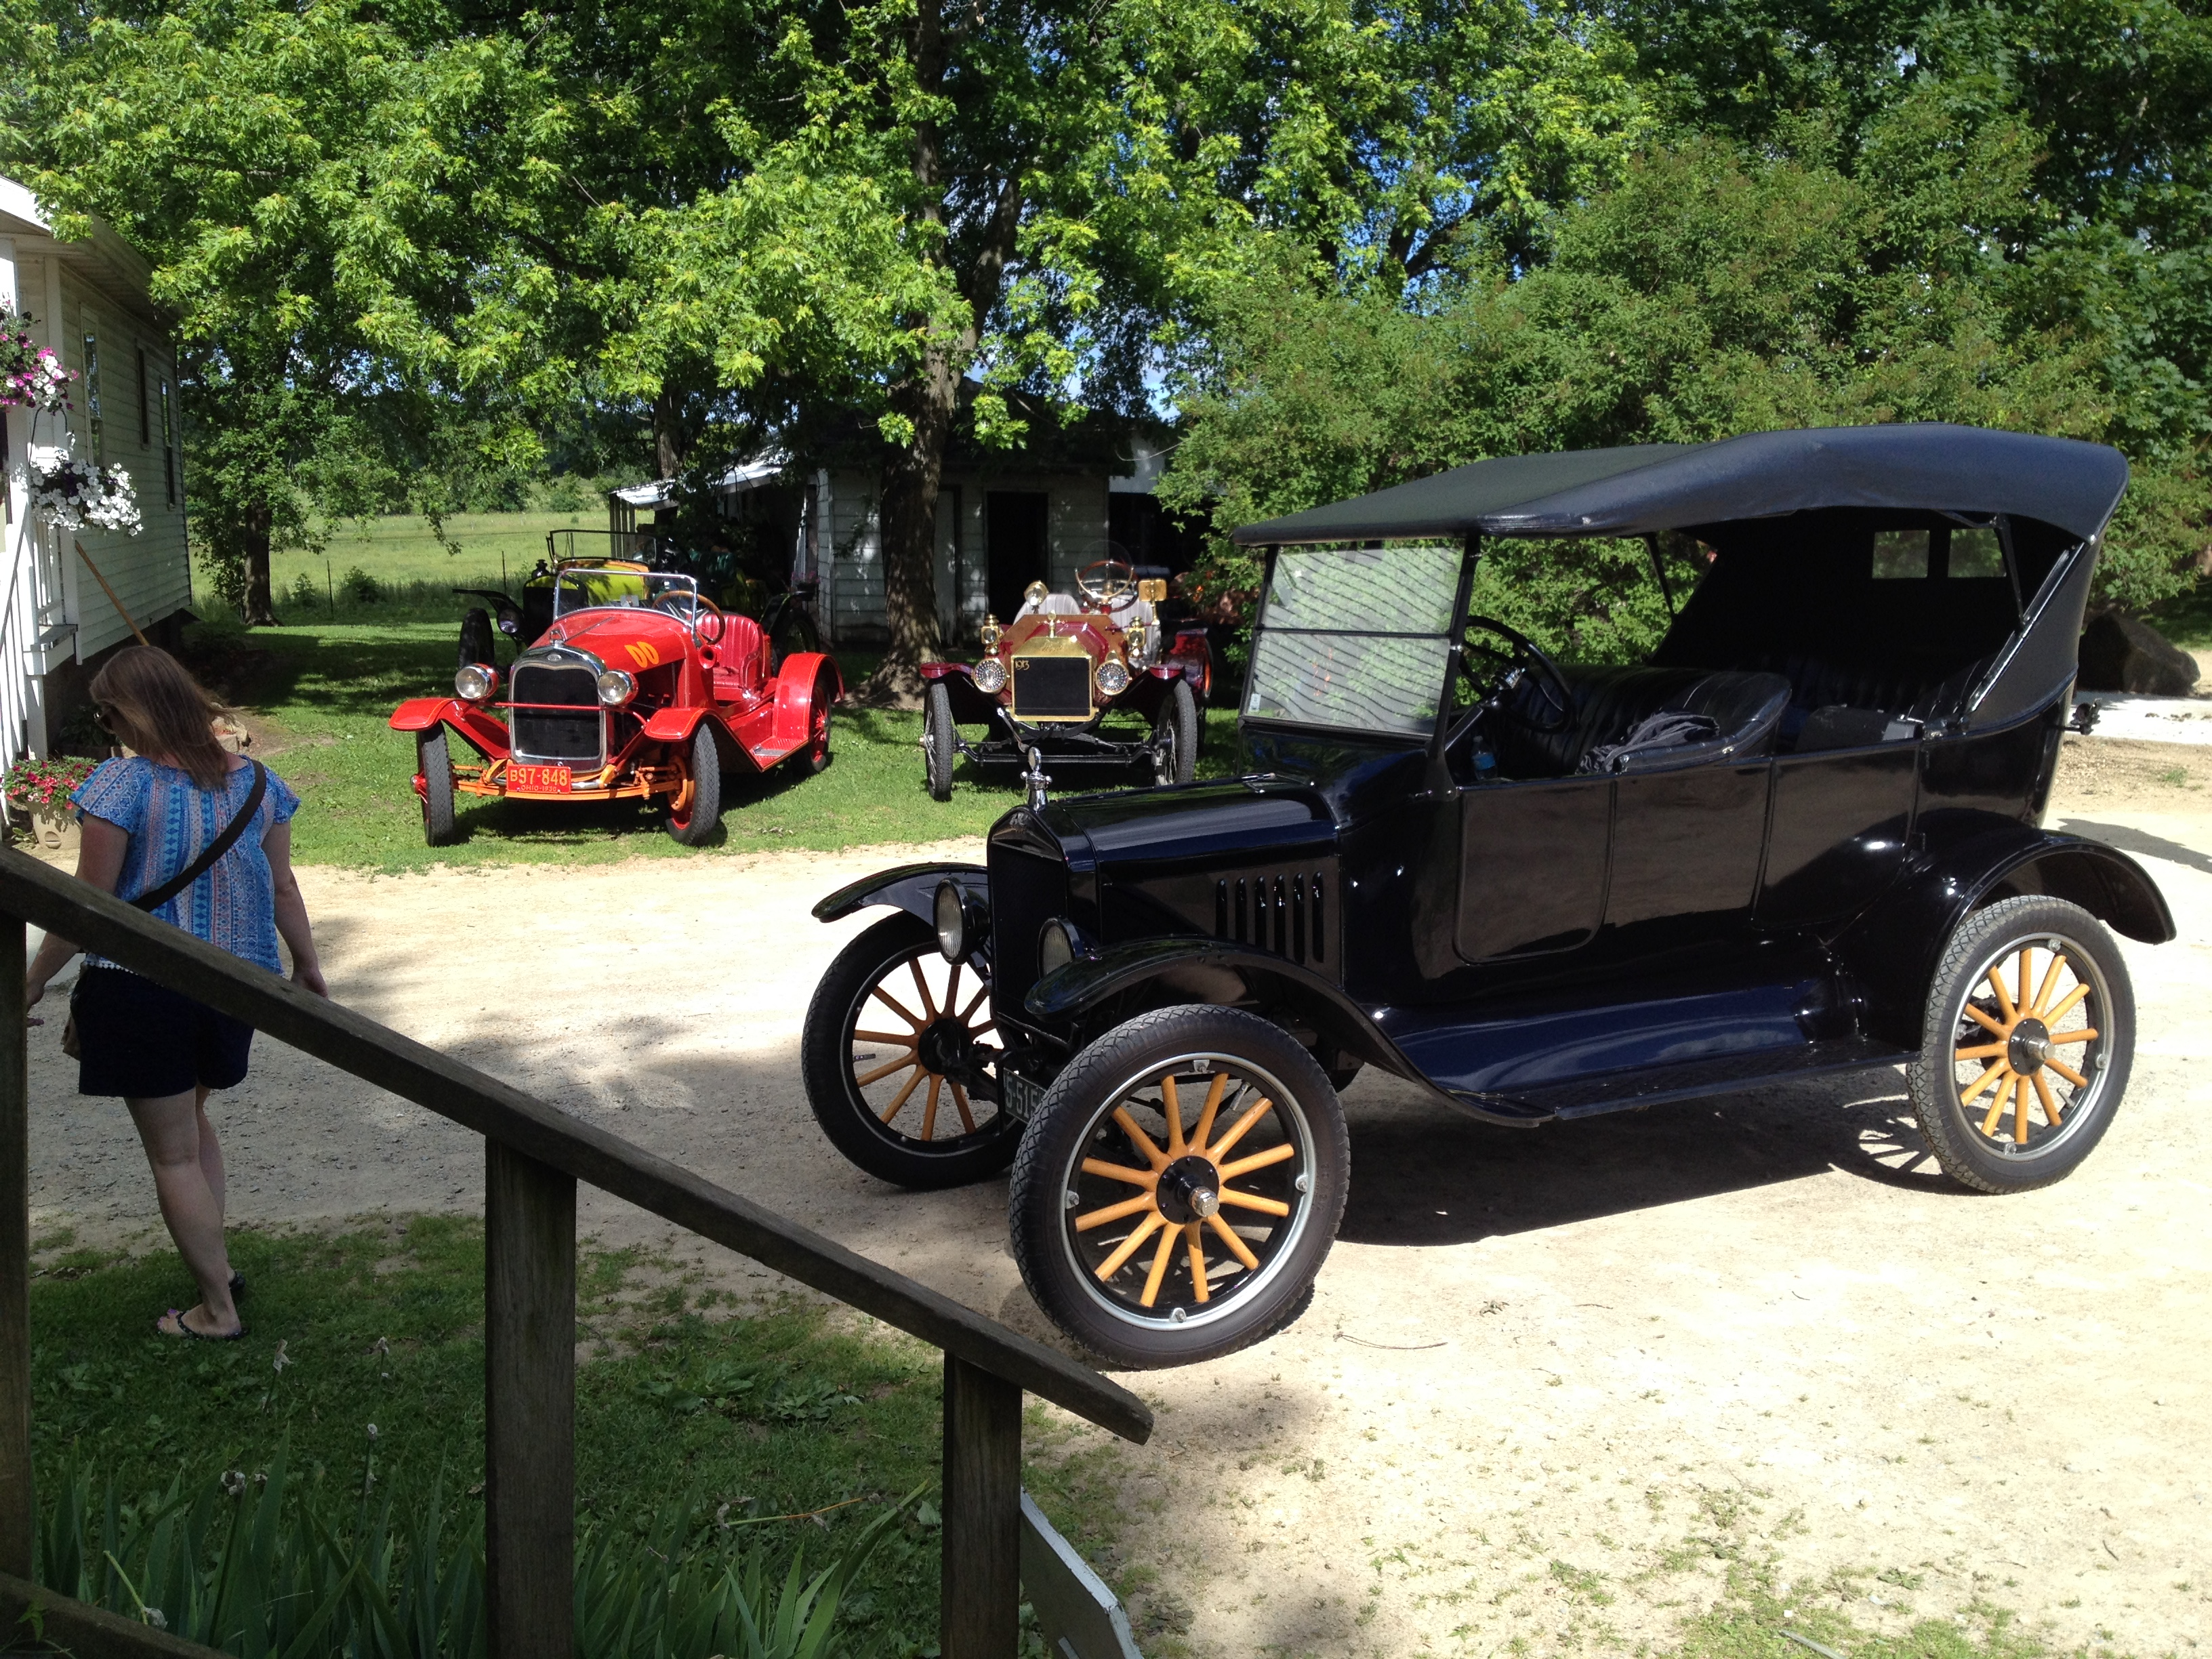 2017, Saturday AM: Amish Country, Vintage Service Station, Antique